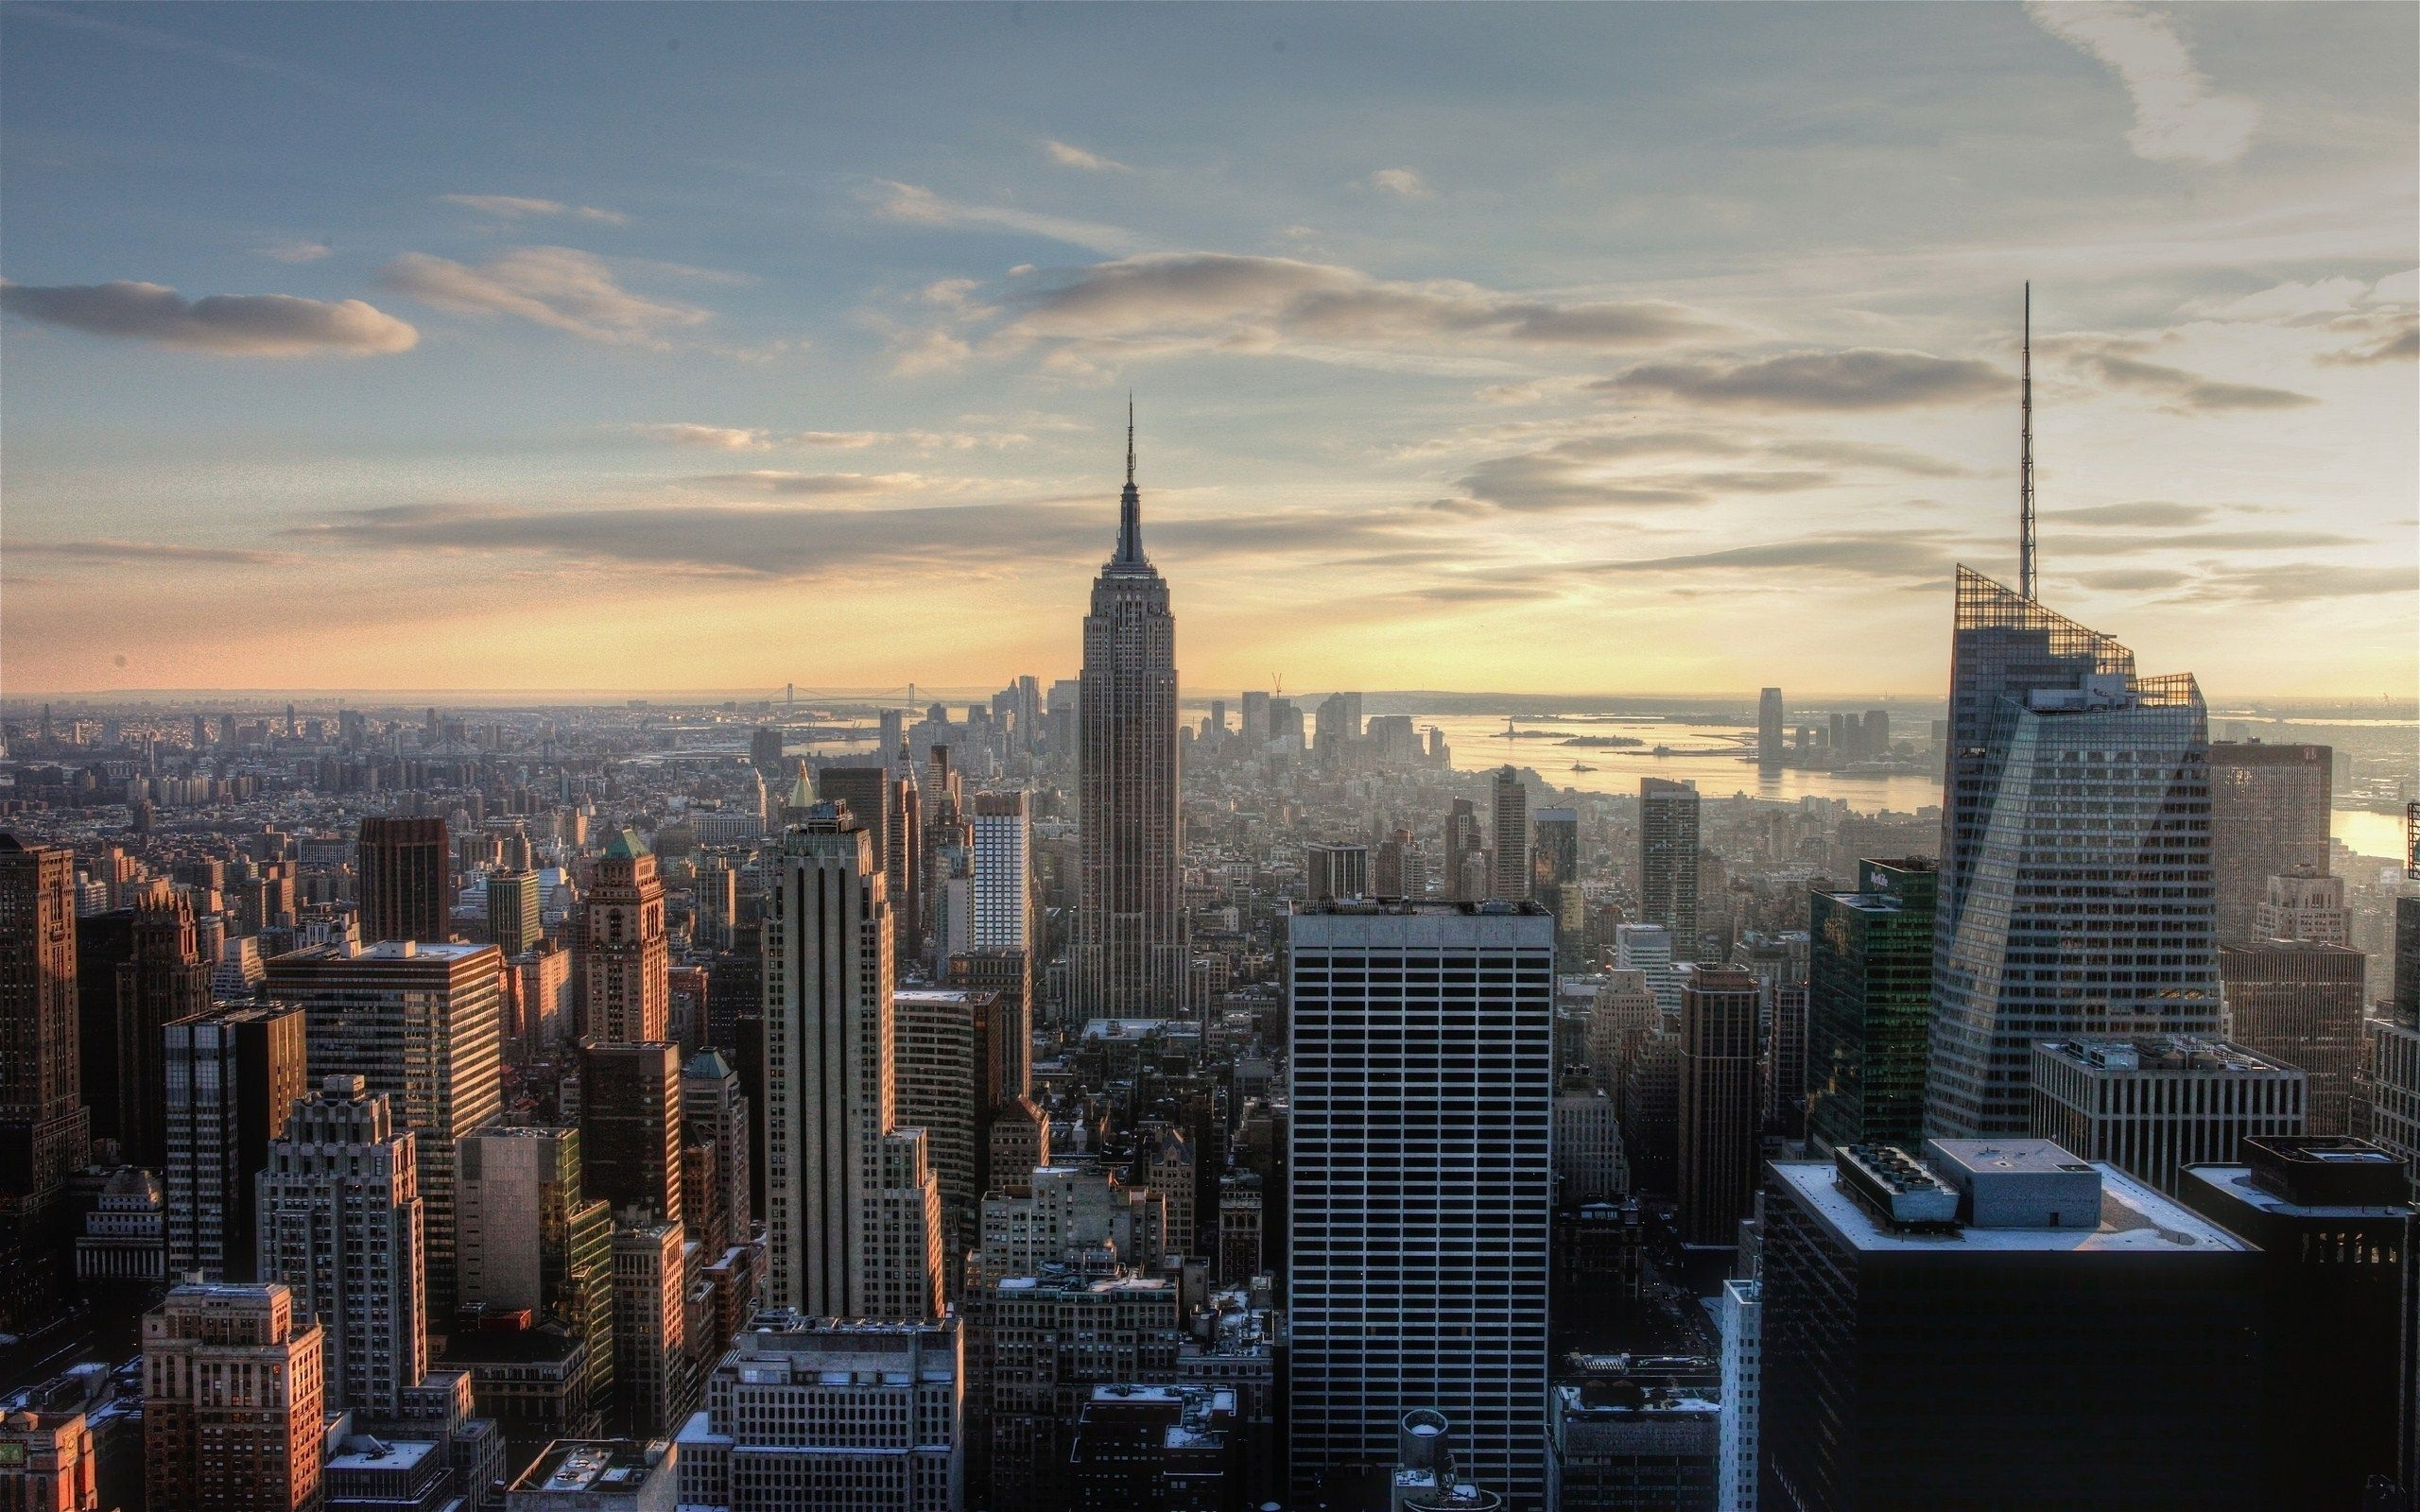 new york city wallpapers hd pictures - wallpaper cave | free